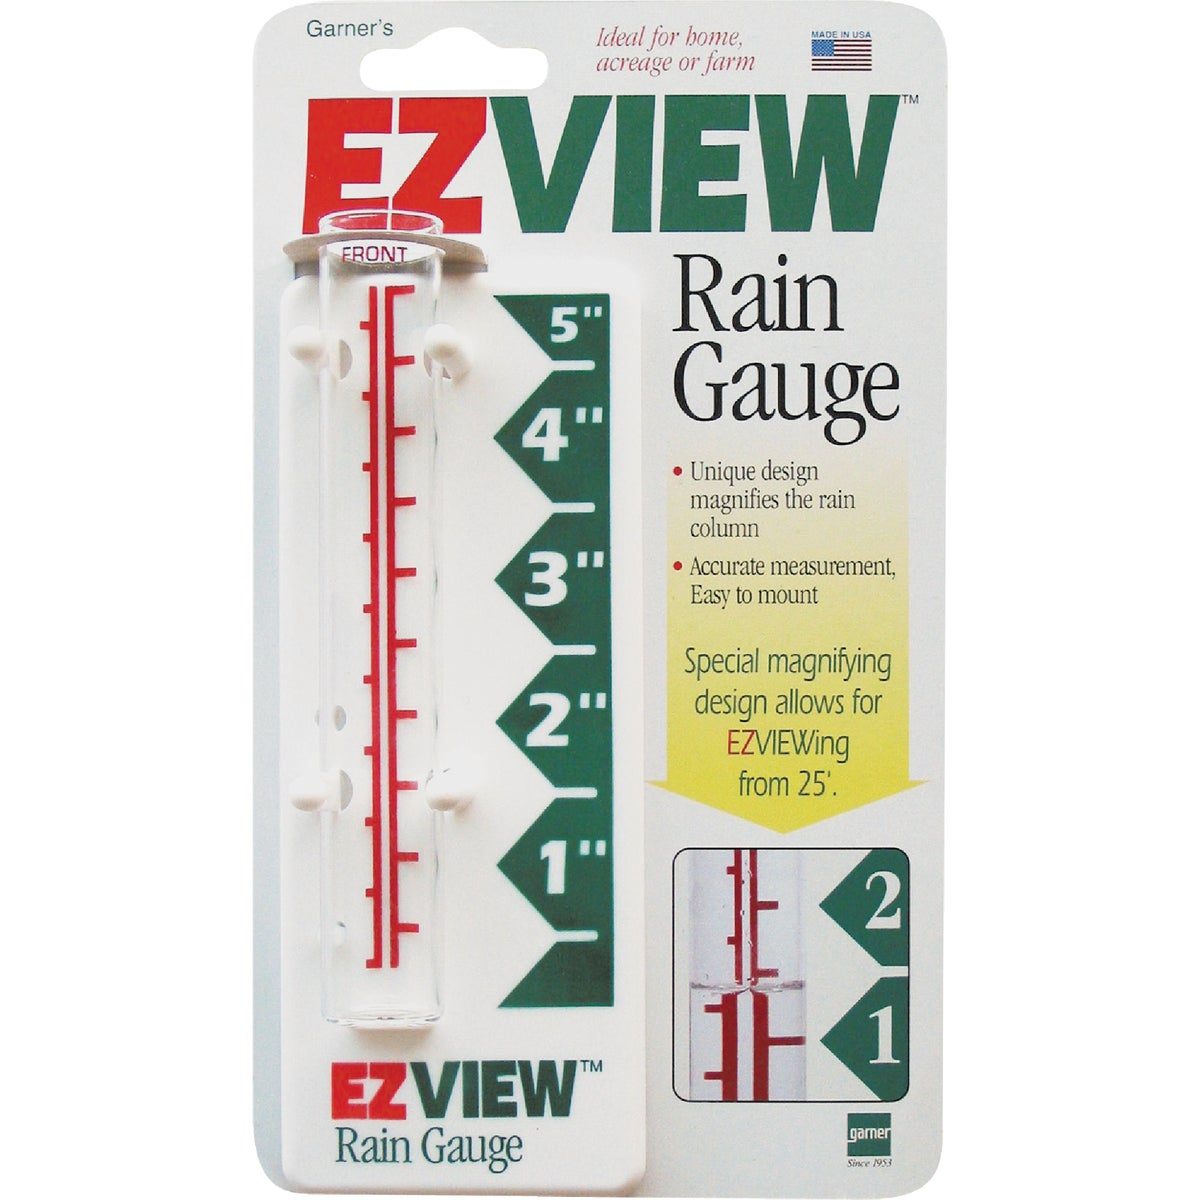 Item 617687, Unique design magnifies the rain column. Accurate measurement. easy-to-mount. Ideal for home, acreage, or farm.